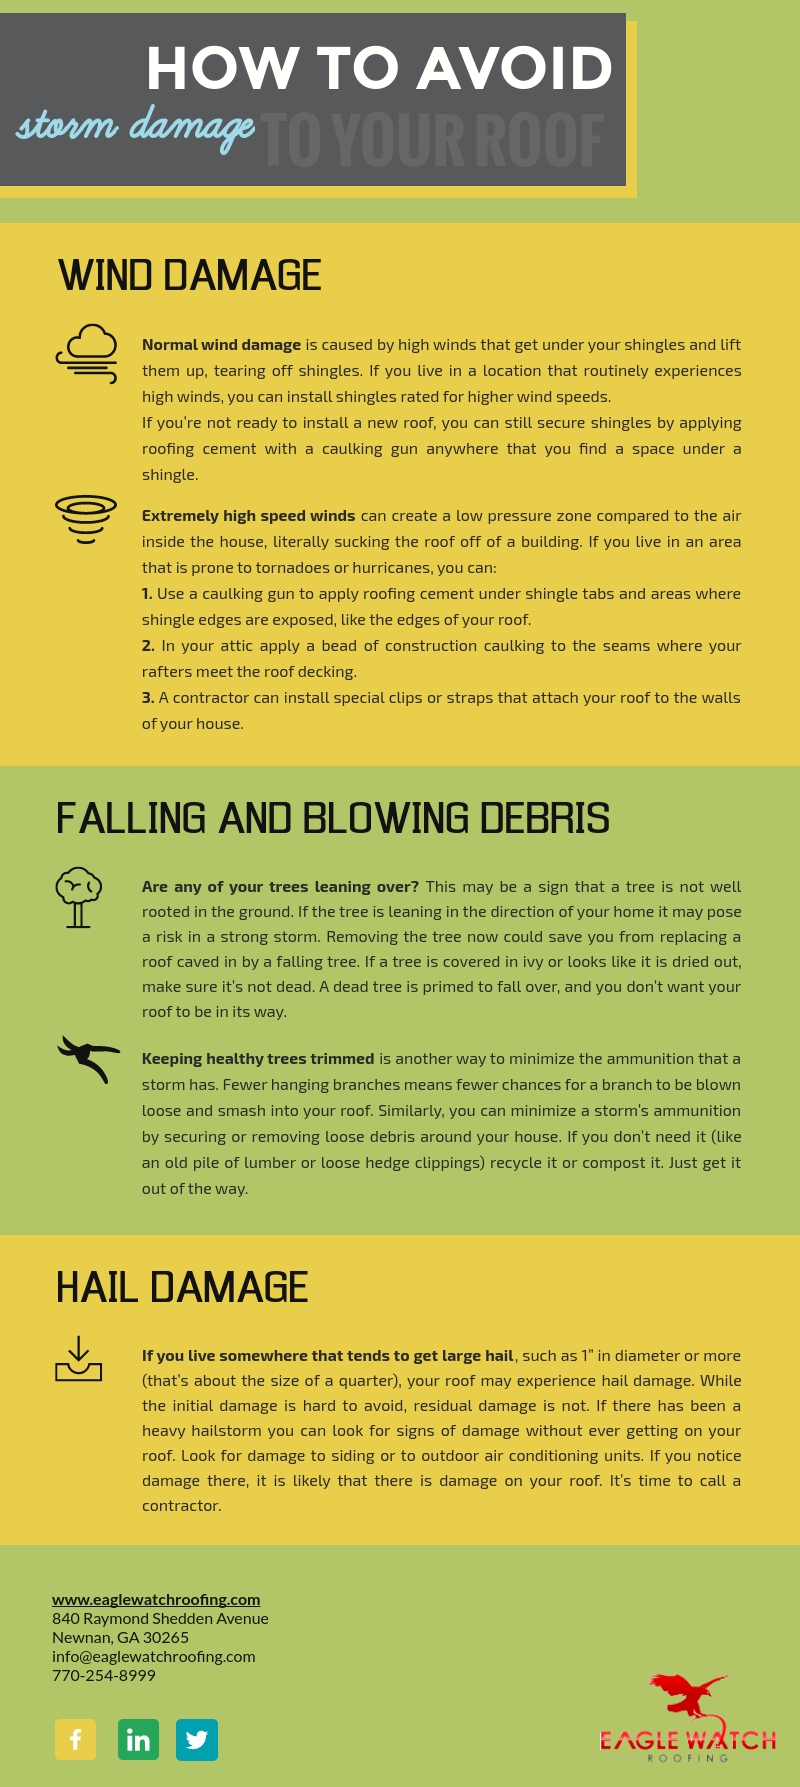 How to Avoid Damage to Your Roof [infographic]